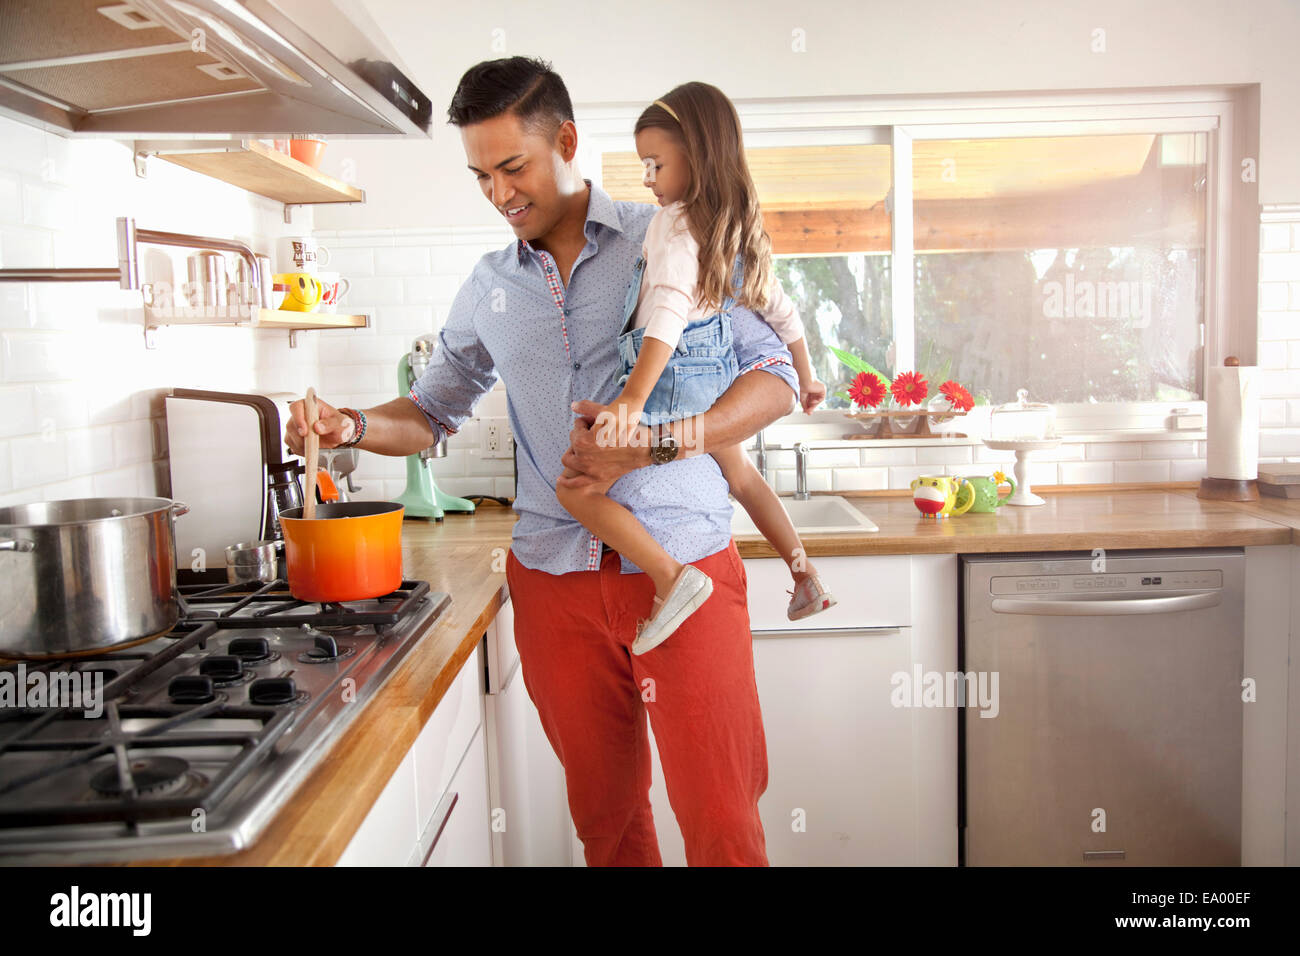 Father and daughter cooking in kitchen - Stock Image